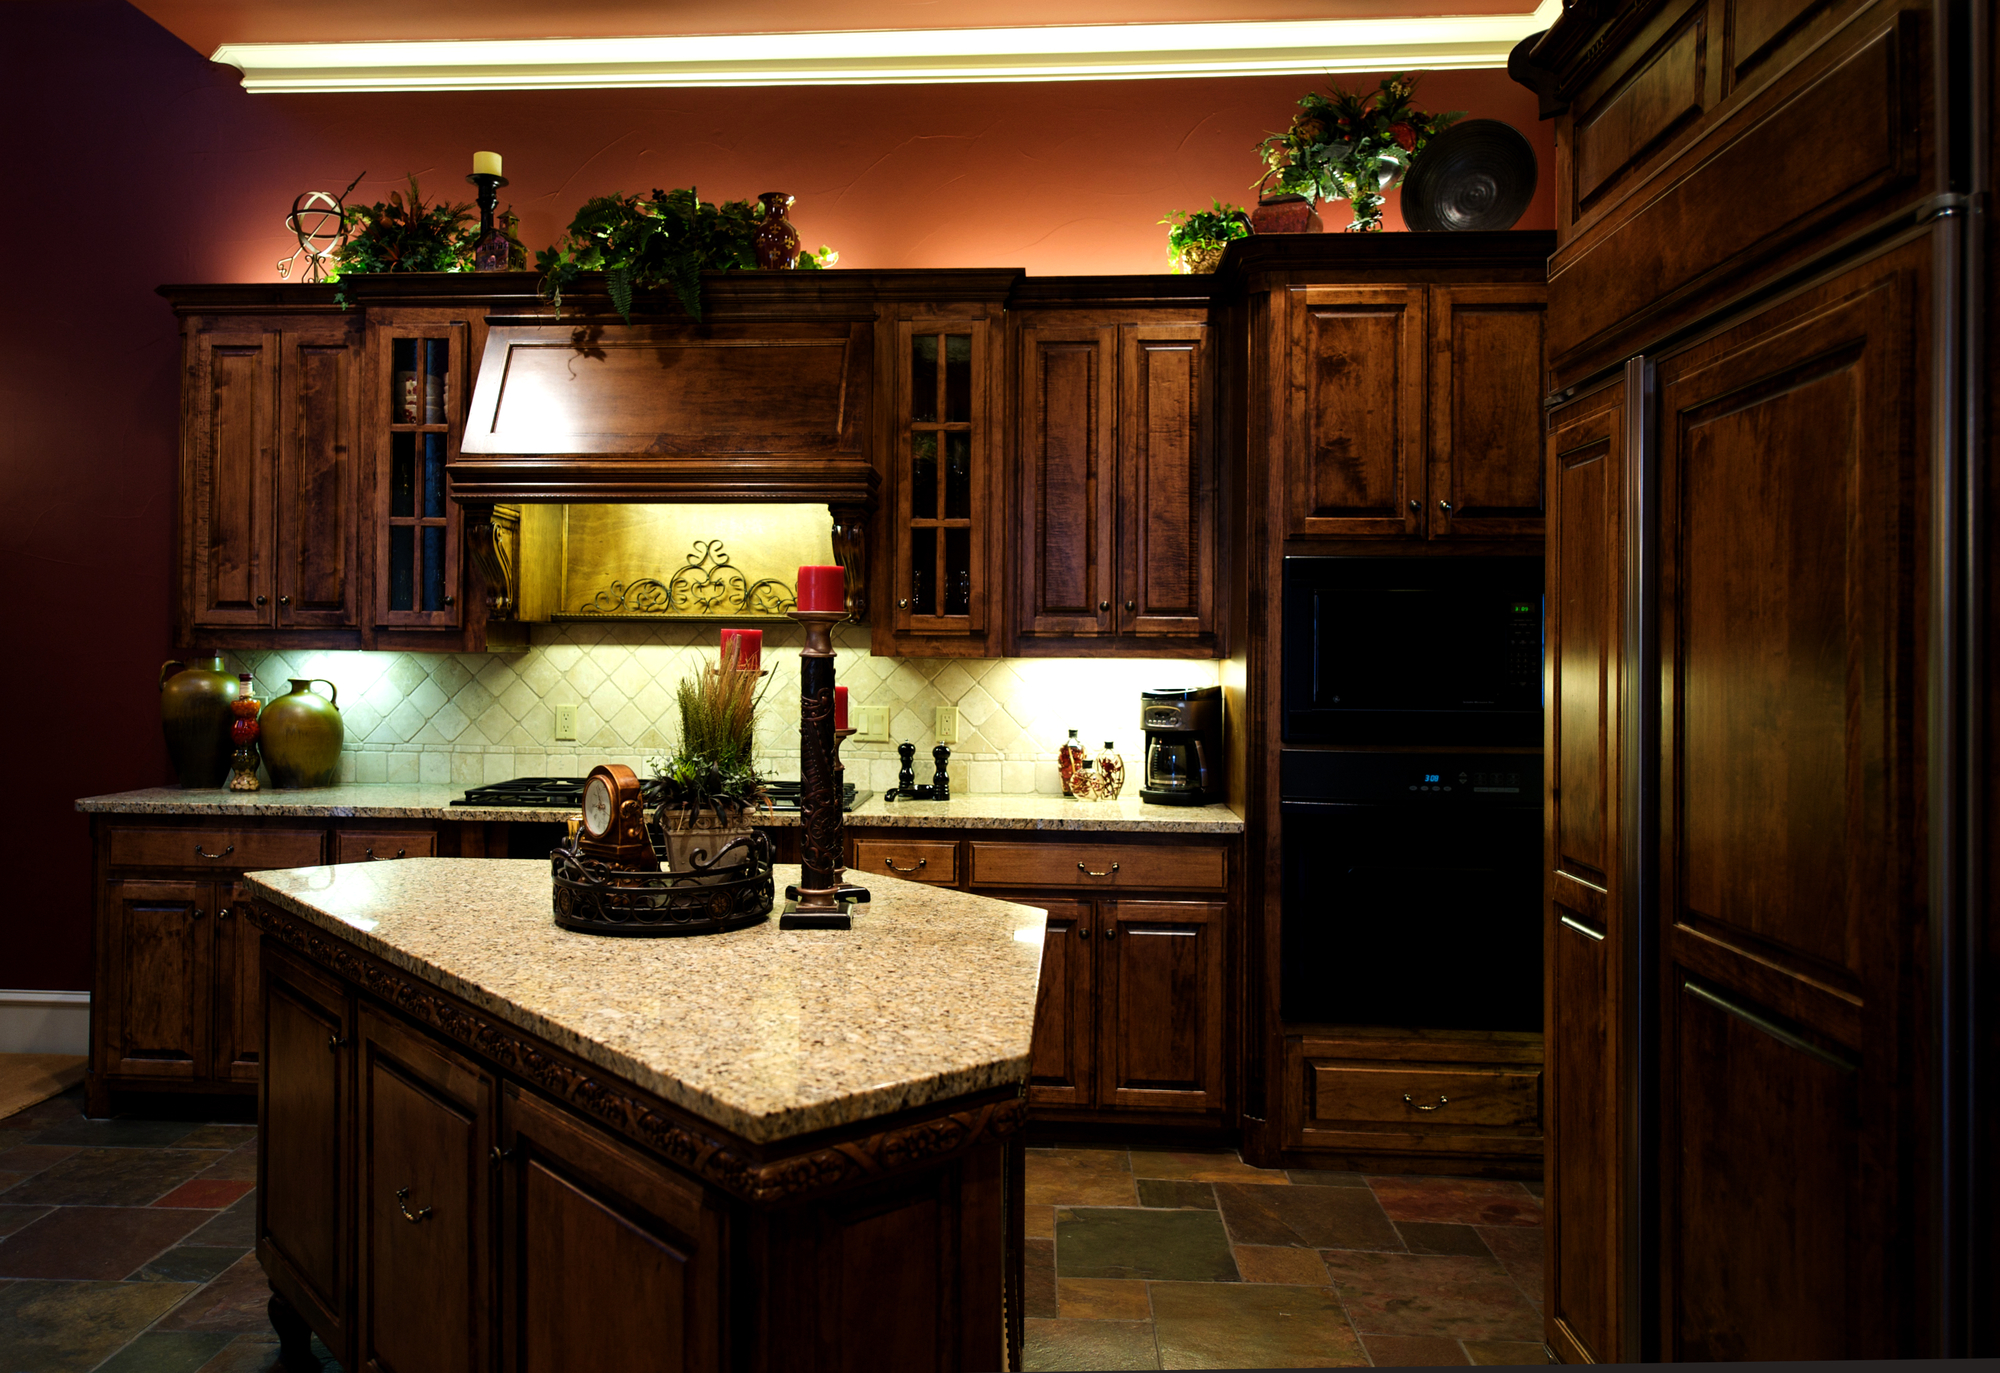 who can help me find the best solid wood cabinetry in palm beach for my home?